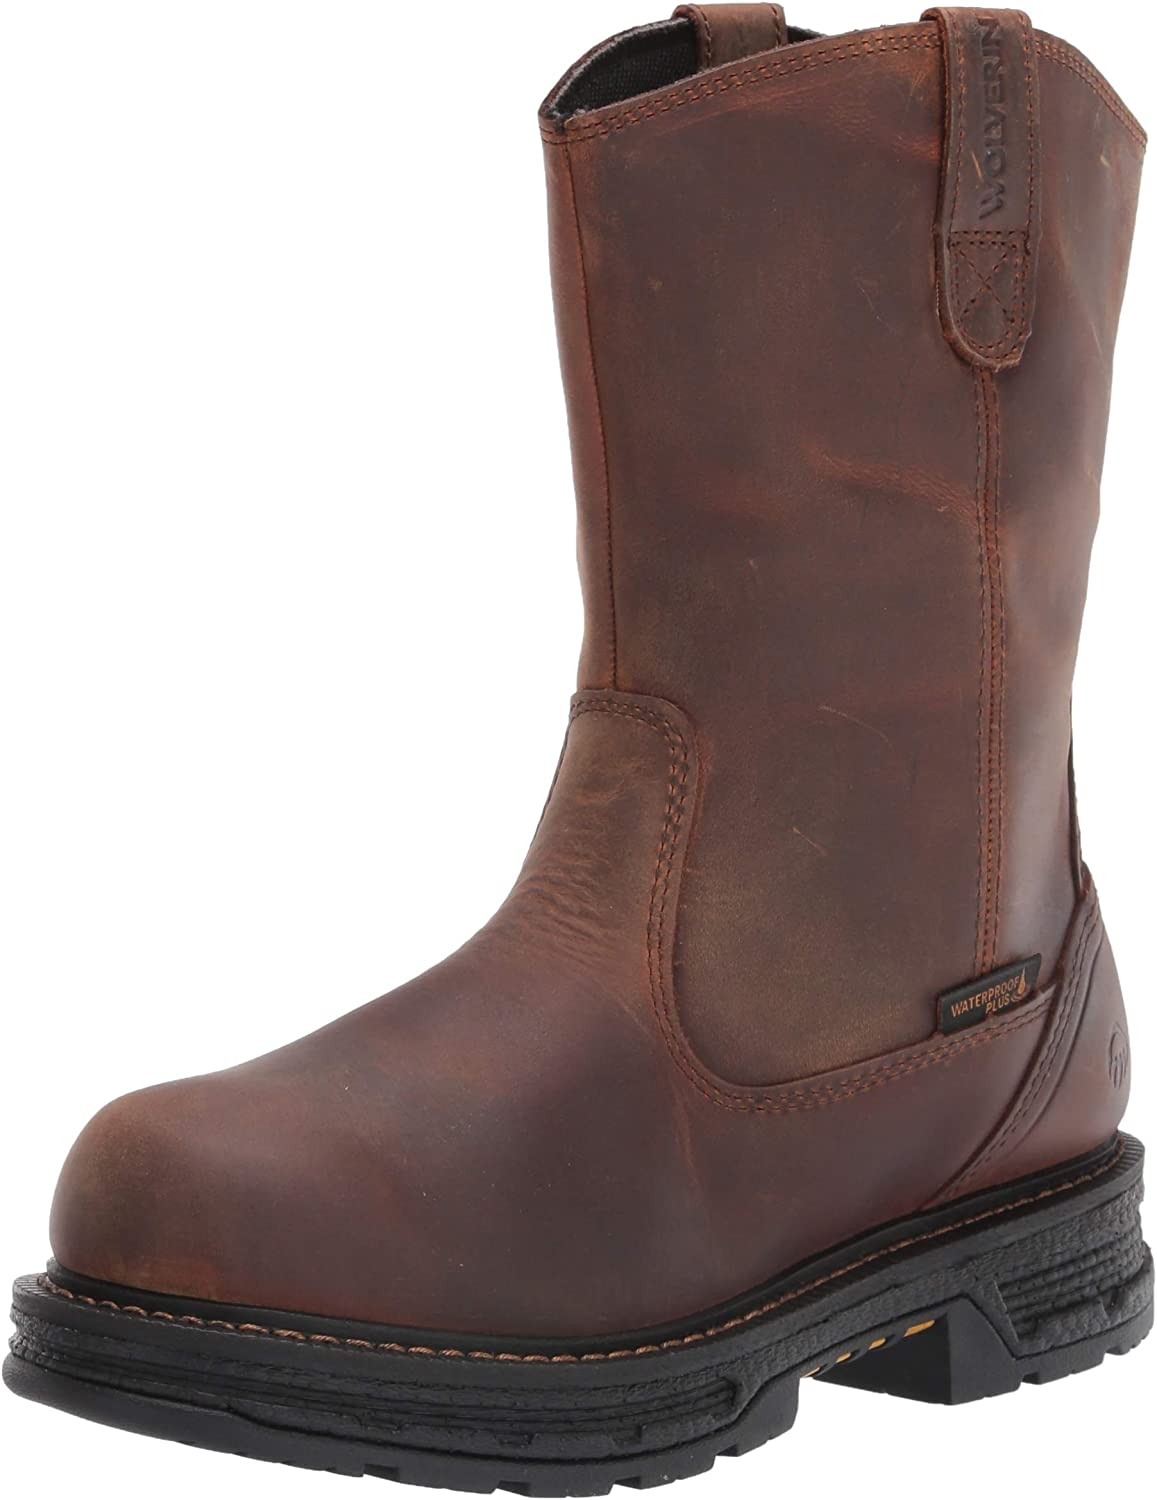   WOLVERINE Men's Hellcat Wellington Boot Construction   Fire & Safety Boots